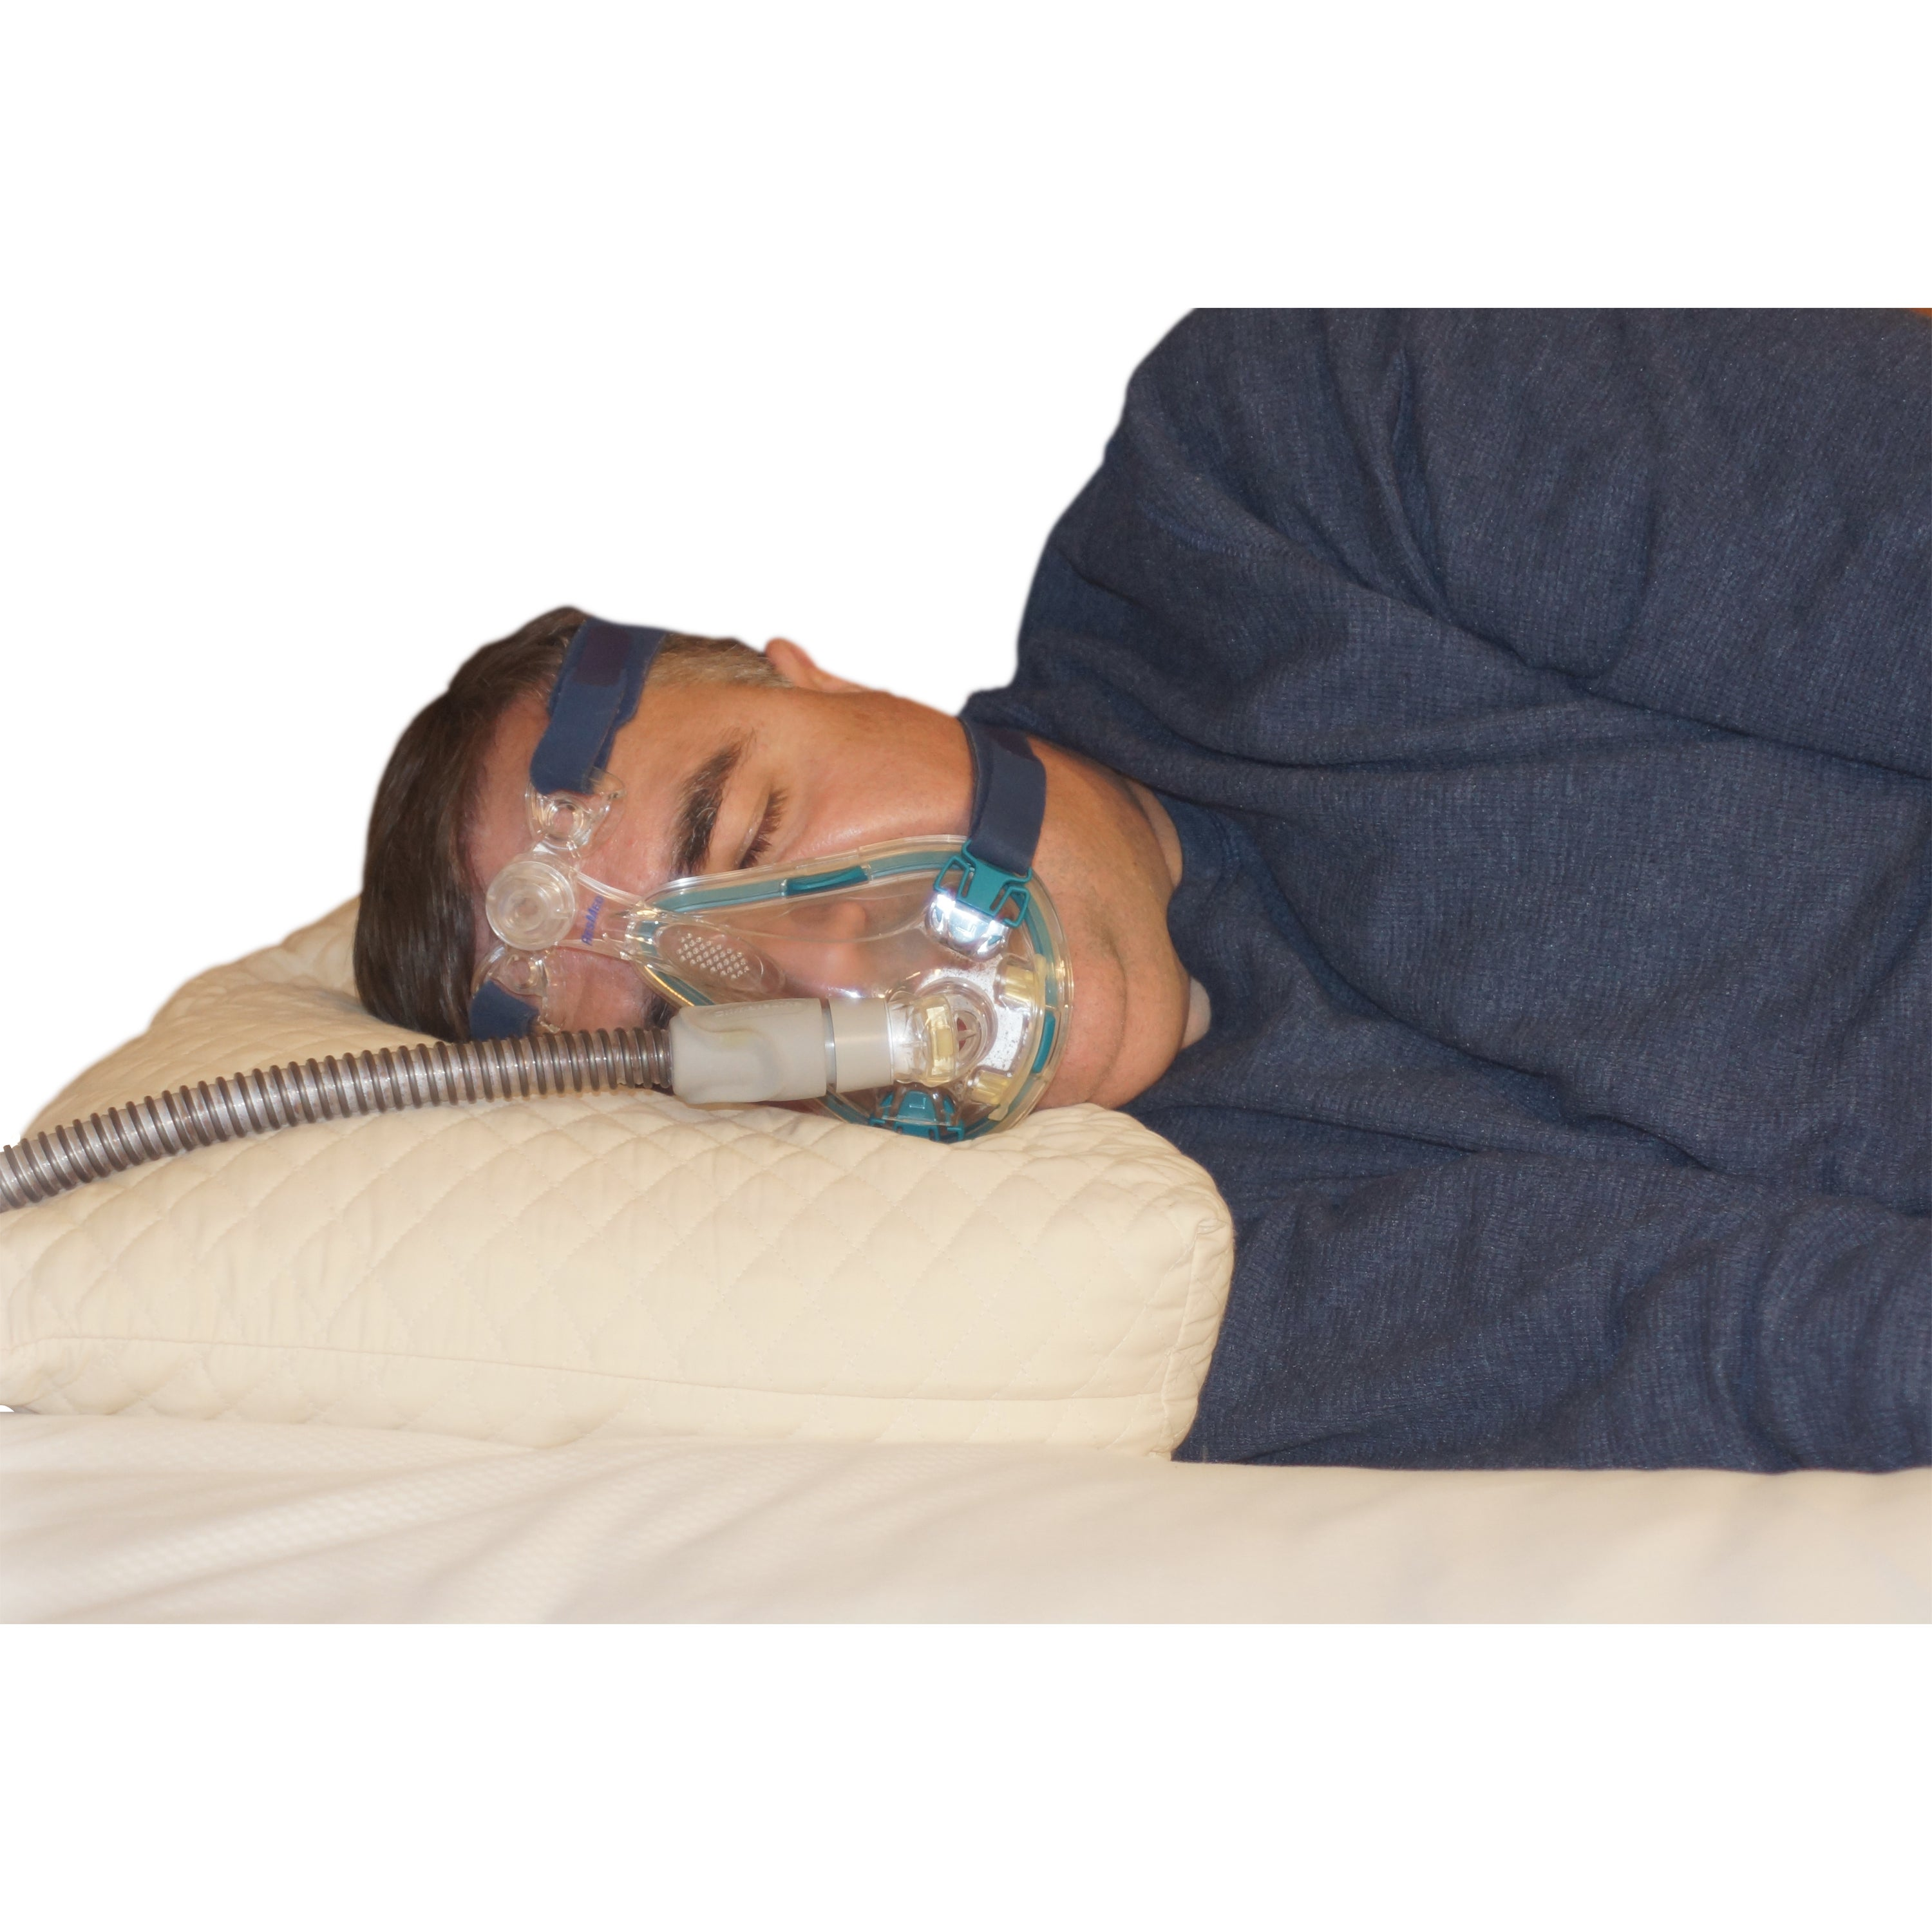 snore pillow sleepzone cutout anti silentnight with sn snoring